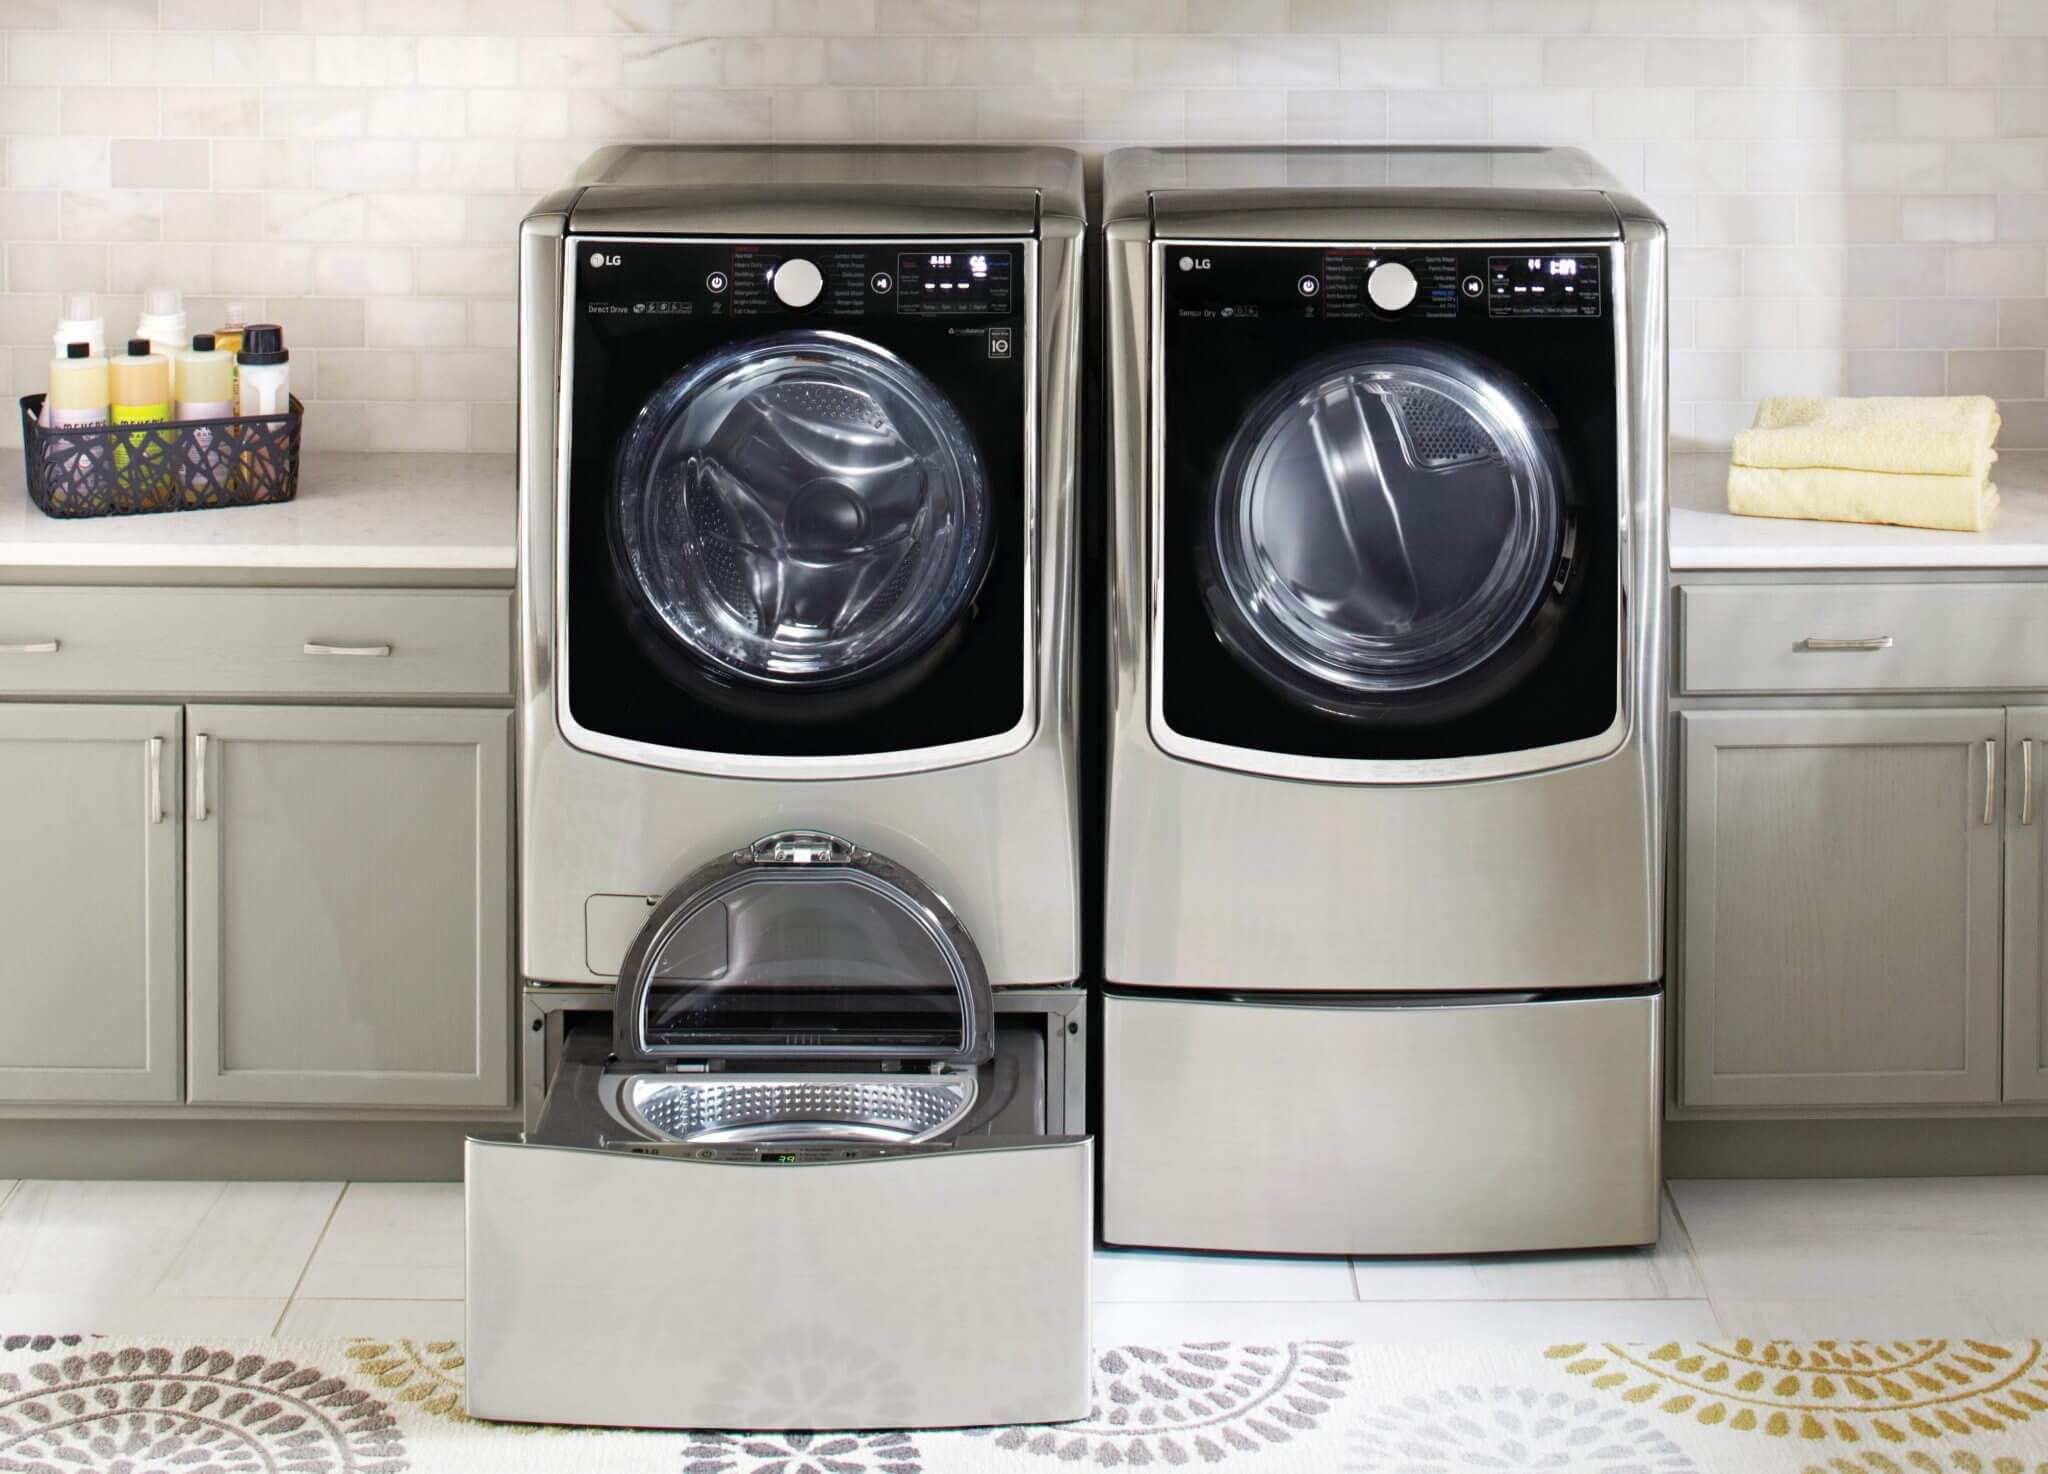 Lg twin wash laundry machine01